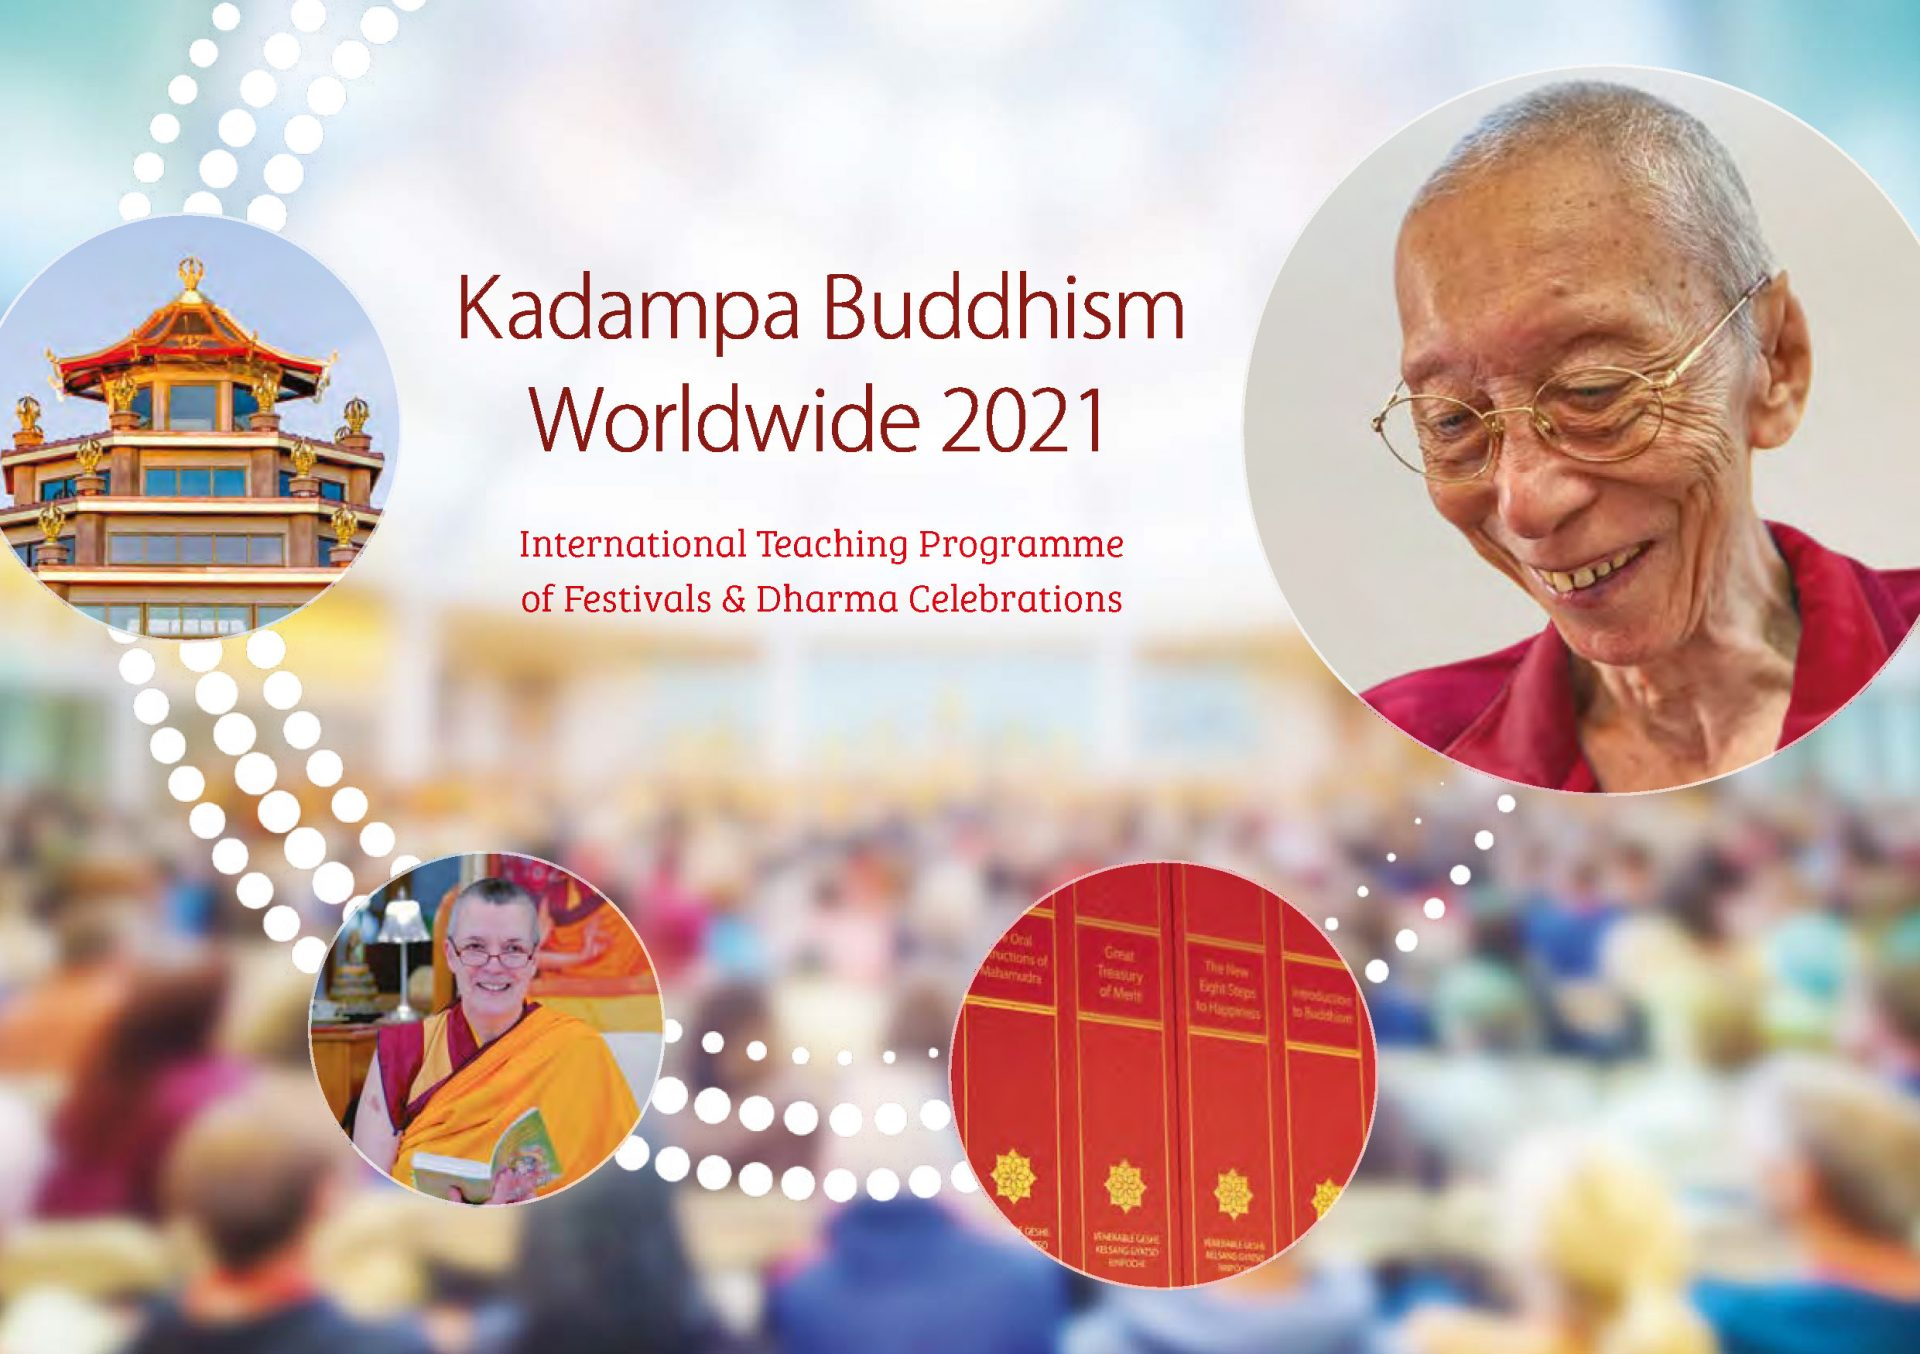 Kadampa Buddhism Worldwide